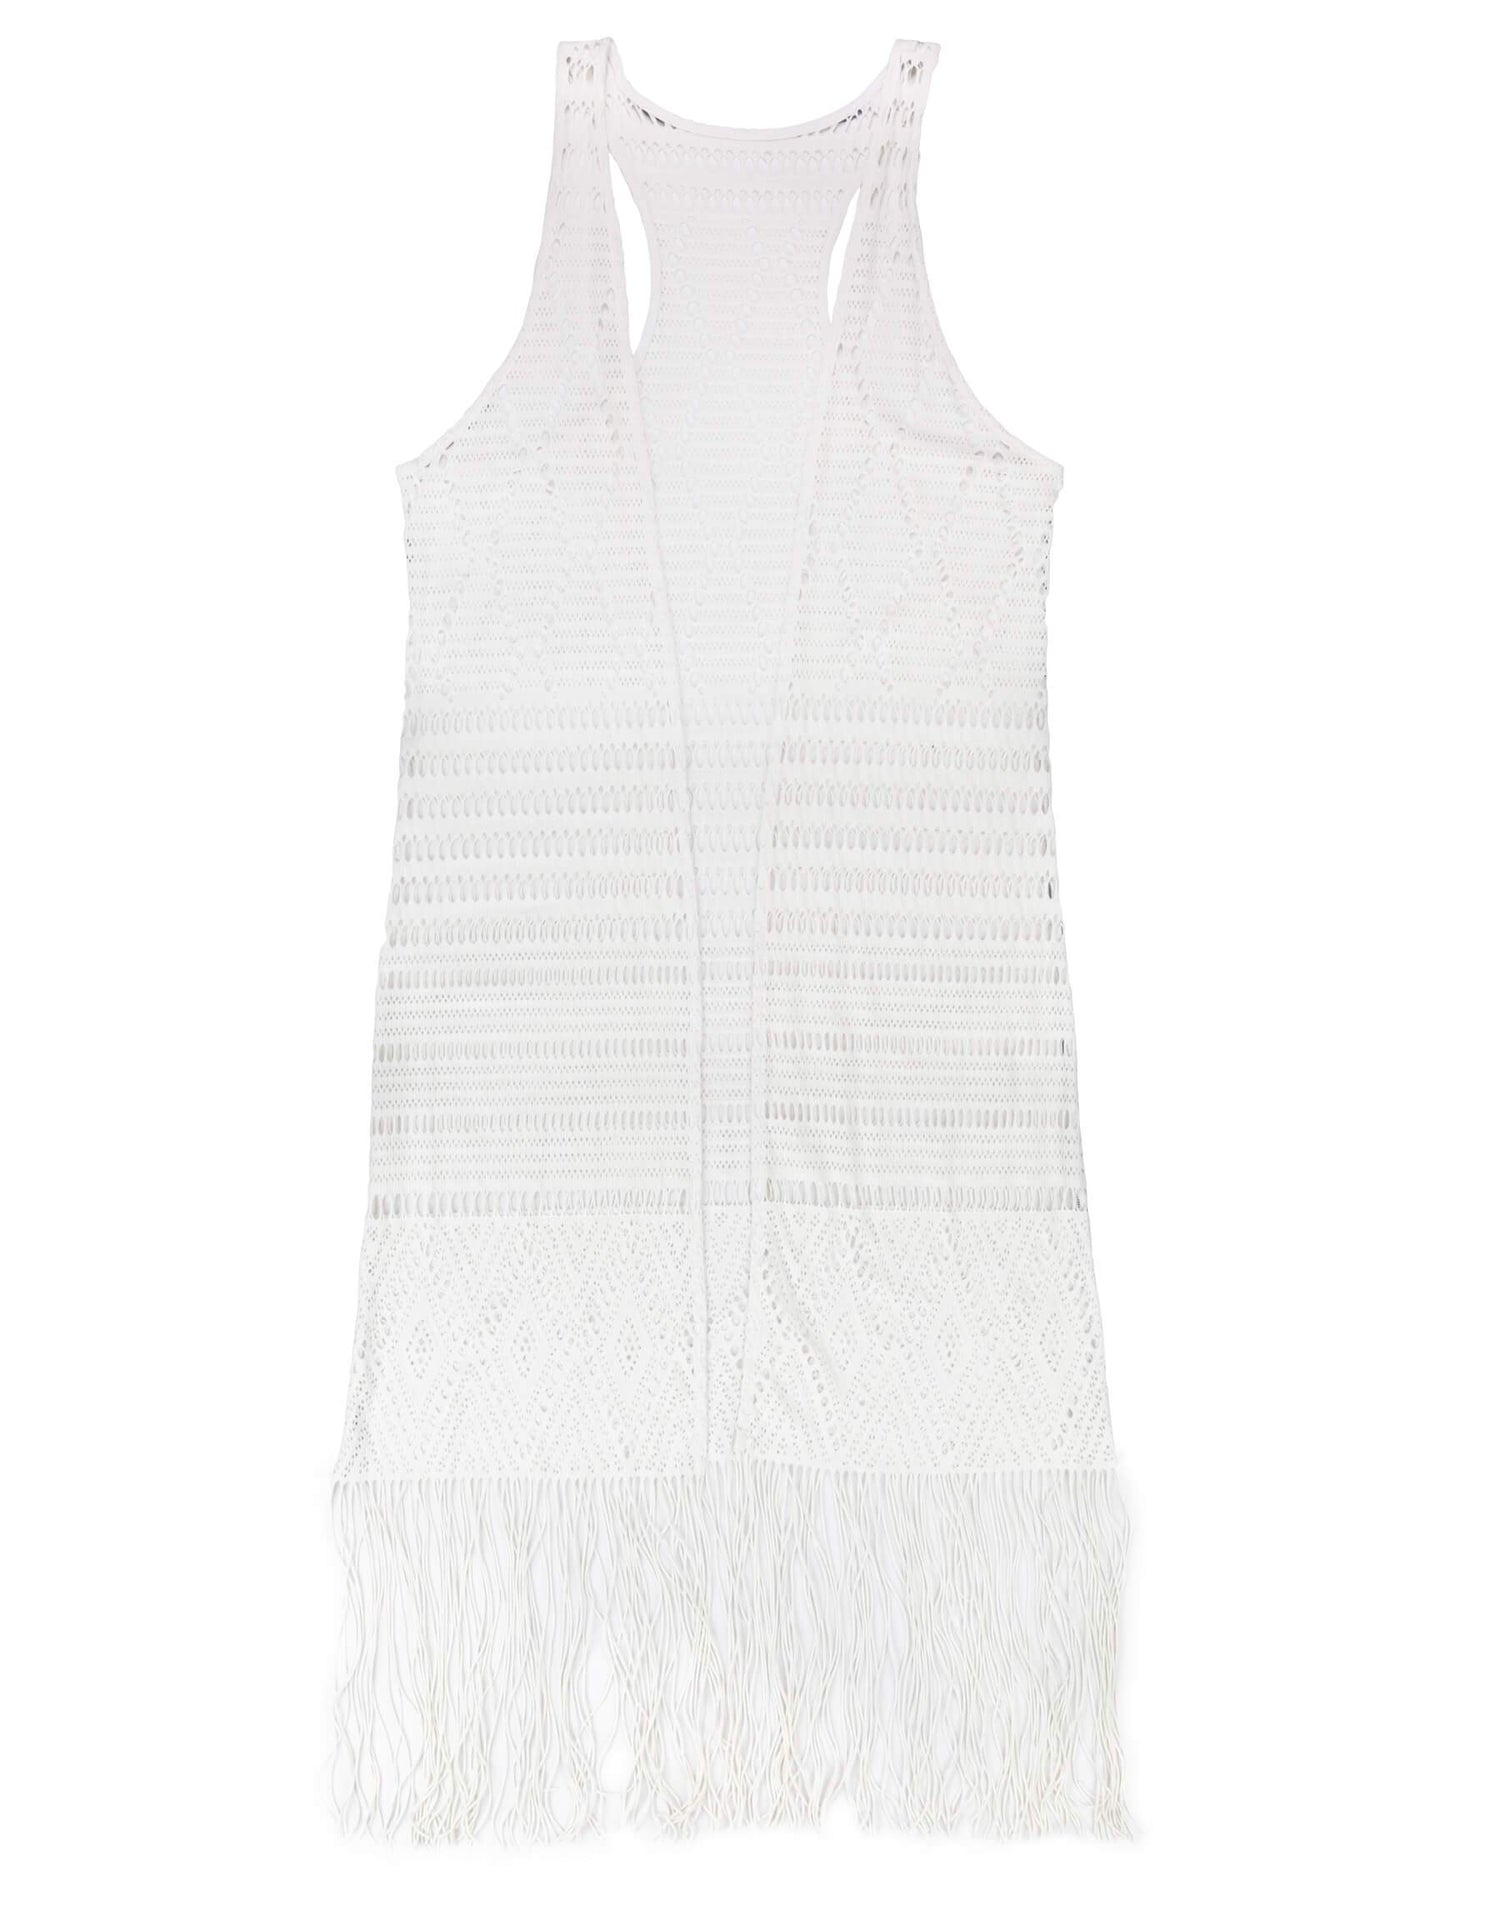 White Long Crochet Beach Cover Up - product view